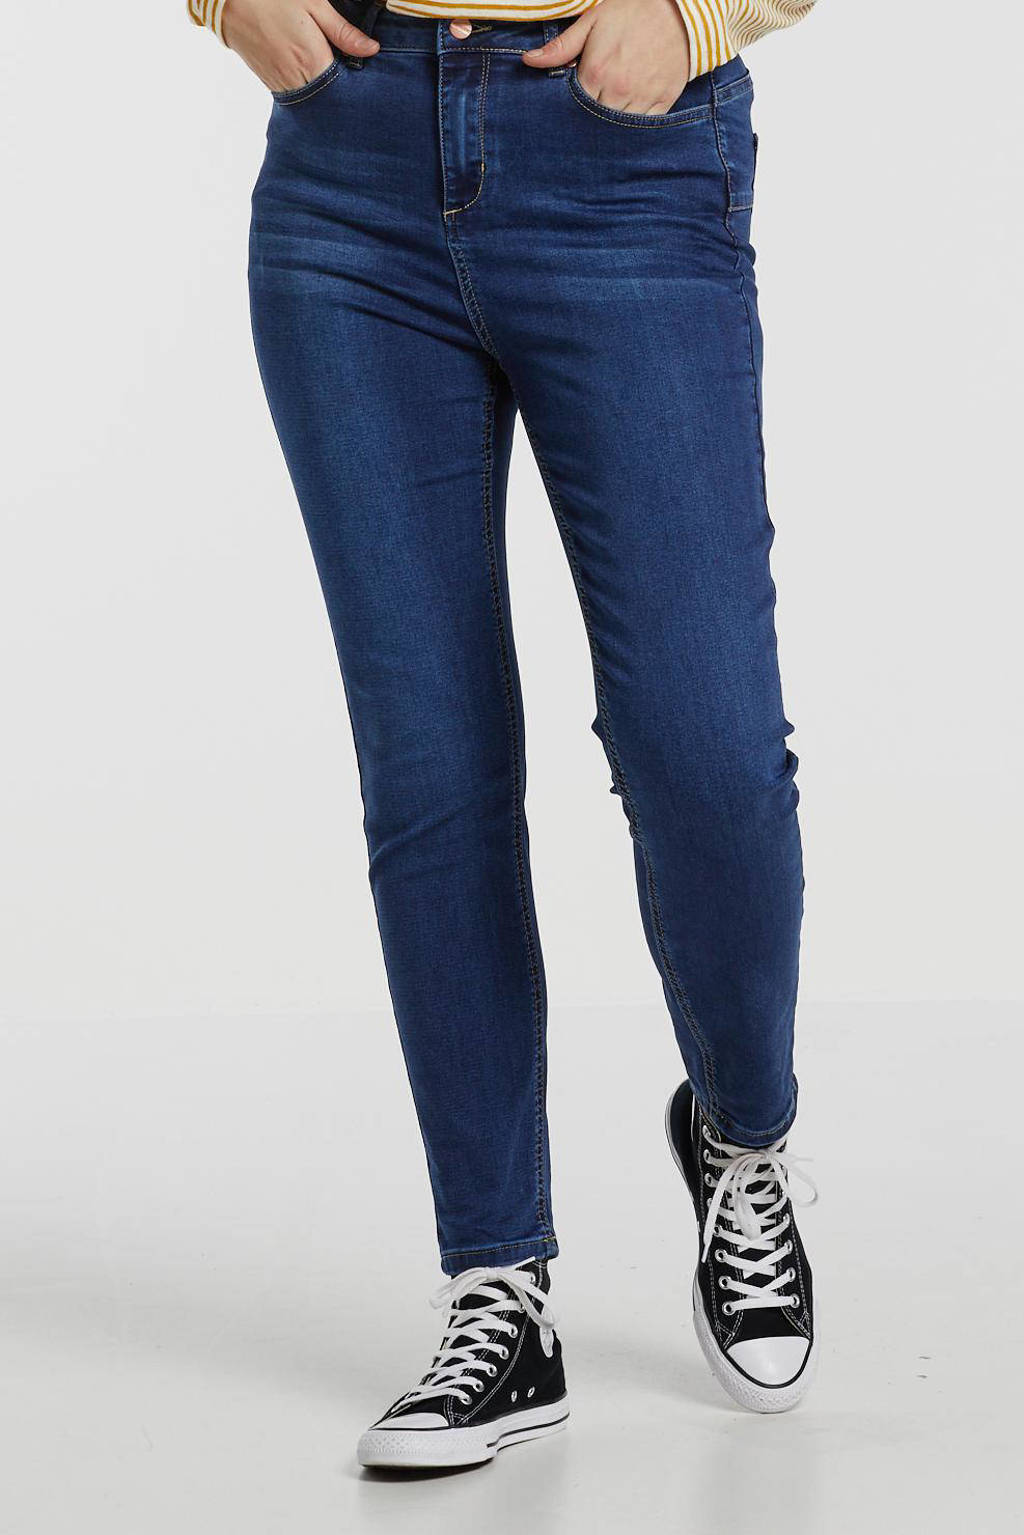 Yesta push-up slim fit jeans Joya donkerblauw, Donkerblauw